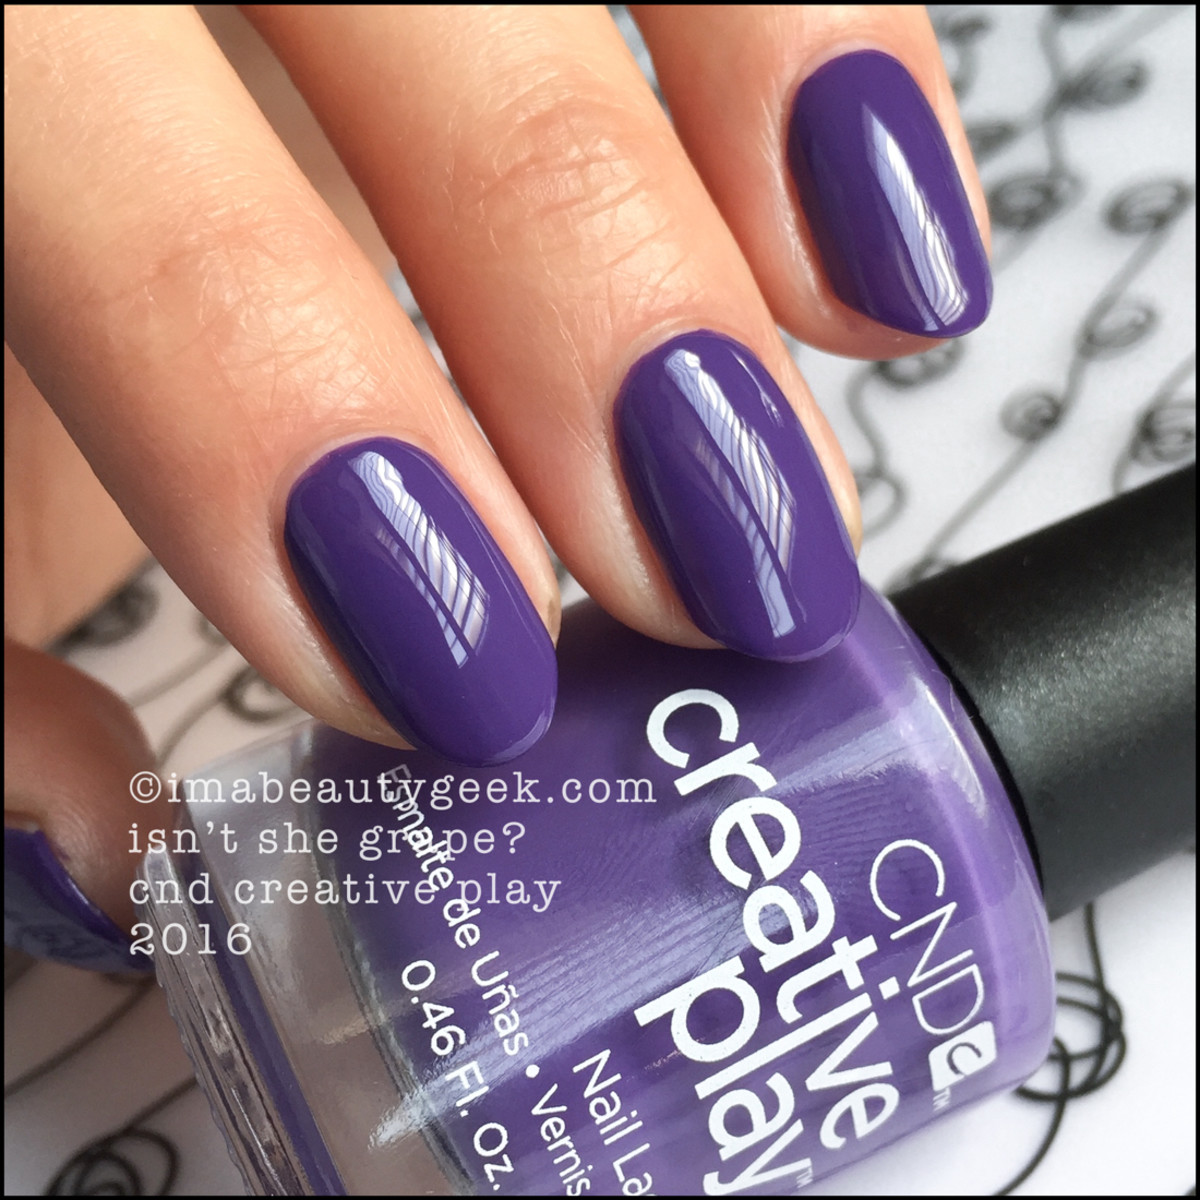 CND Creative Play Isnt She Grape_CND Ceative Play Swatches